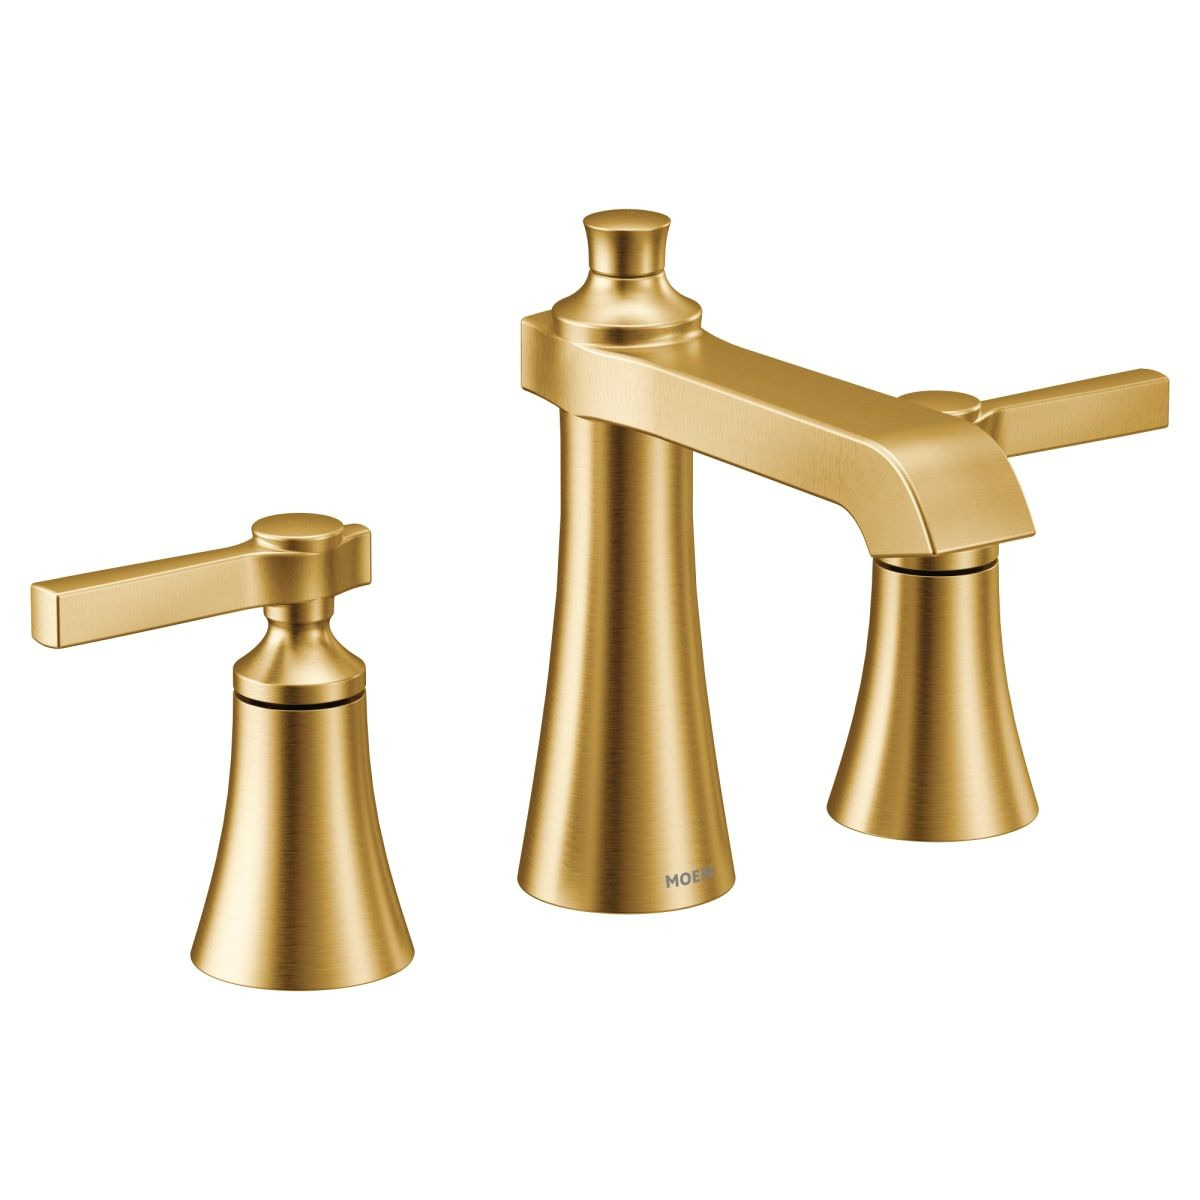 Moen Ts6984bg Brushed Gold Flara 1 2 Gpm Widespread Bathroom Faucet With Duralock And Duralast Cartridge Faucetdirect Com In 2021 Widespread Bathroom Faucet Bathroom Faucets Bathroom Sink Faucets [ 1200 x 1200 Pixel ]